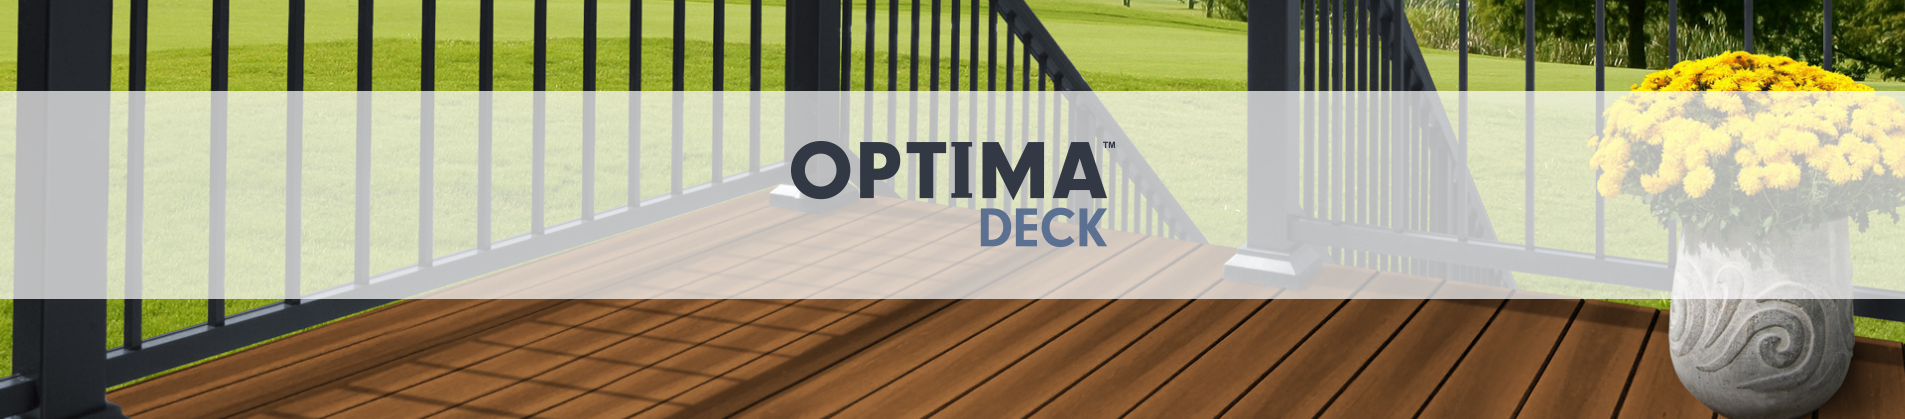 Screenshot_2018-11-26 Optima Deck Residential and Commercial Composite Decking